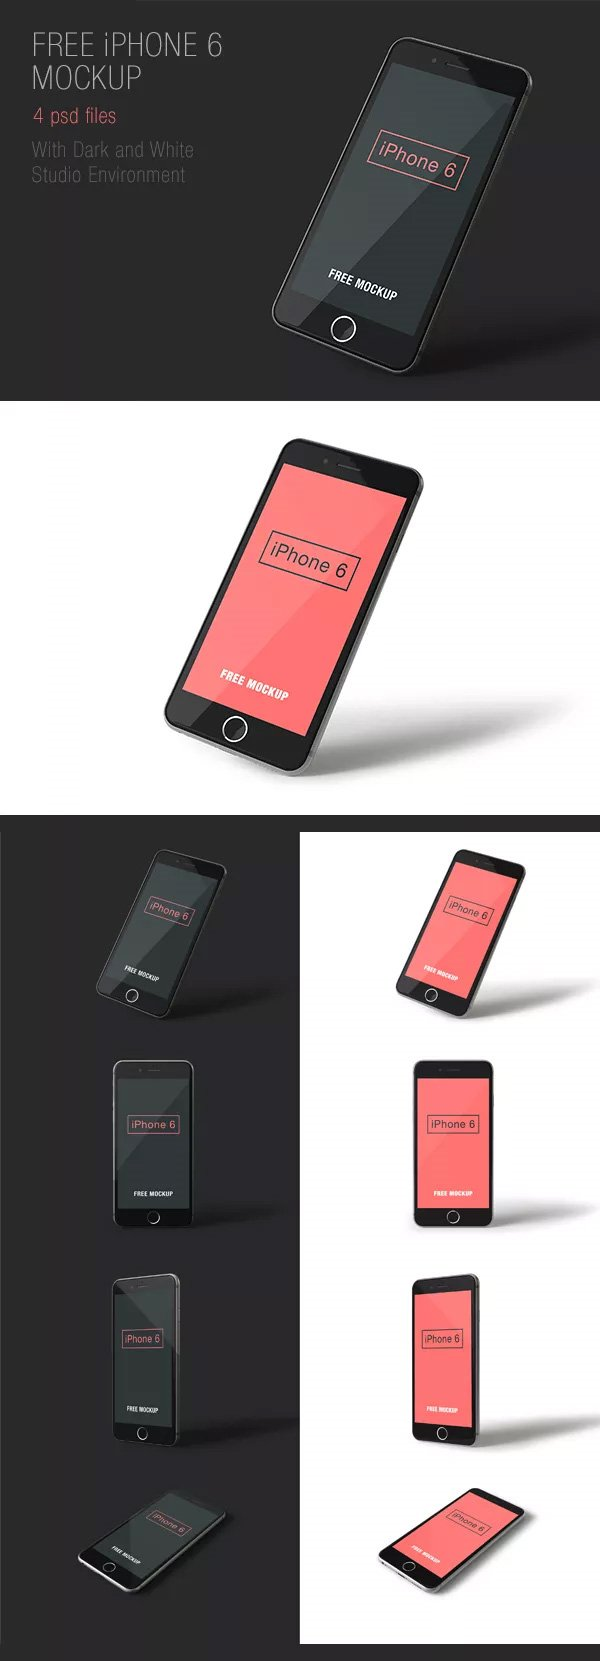 iPhone 6 PSD Mockups